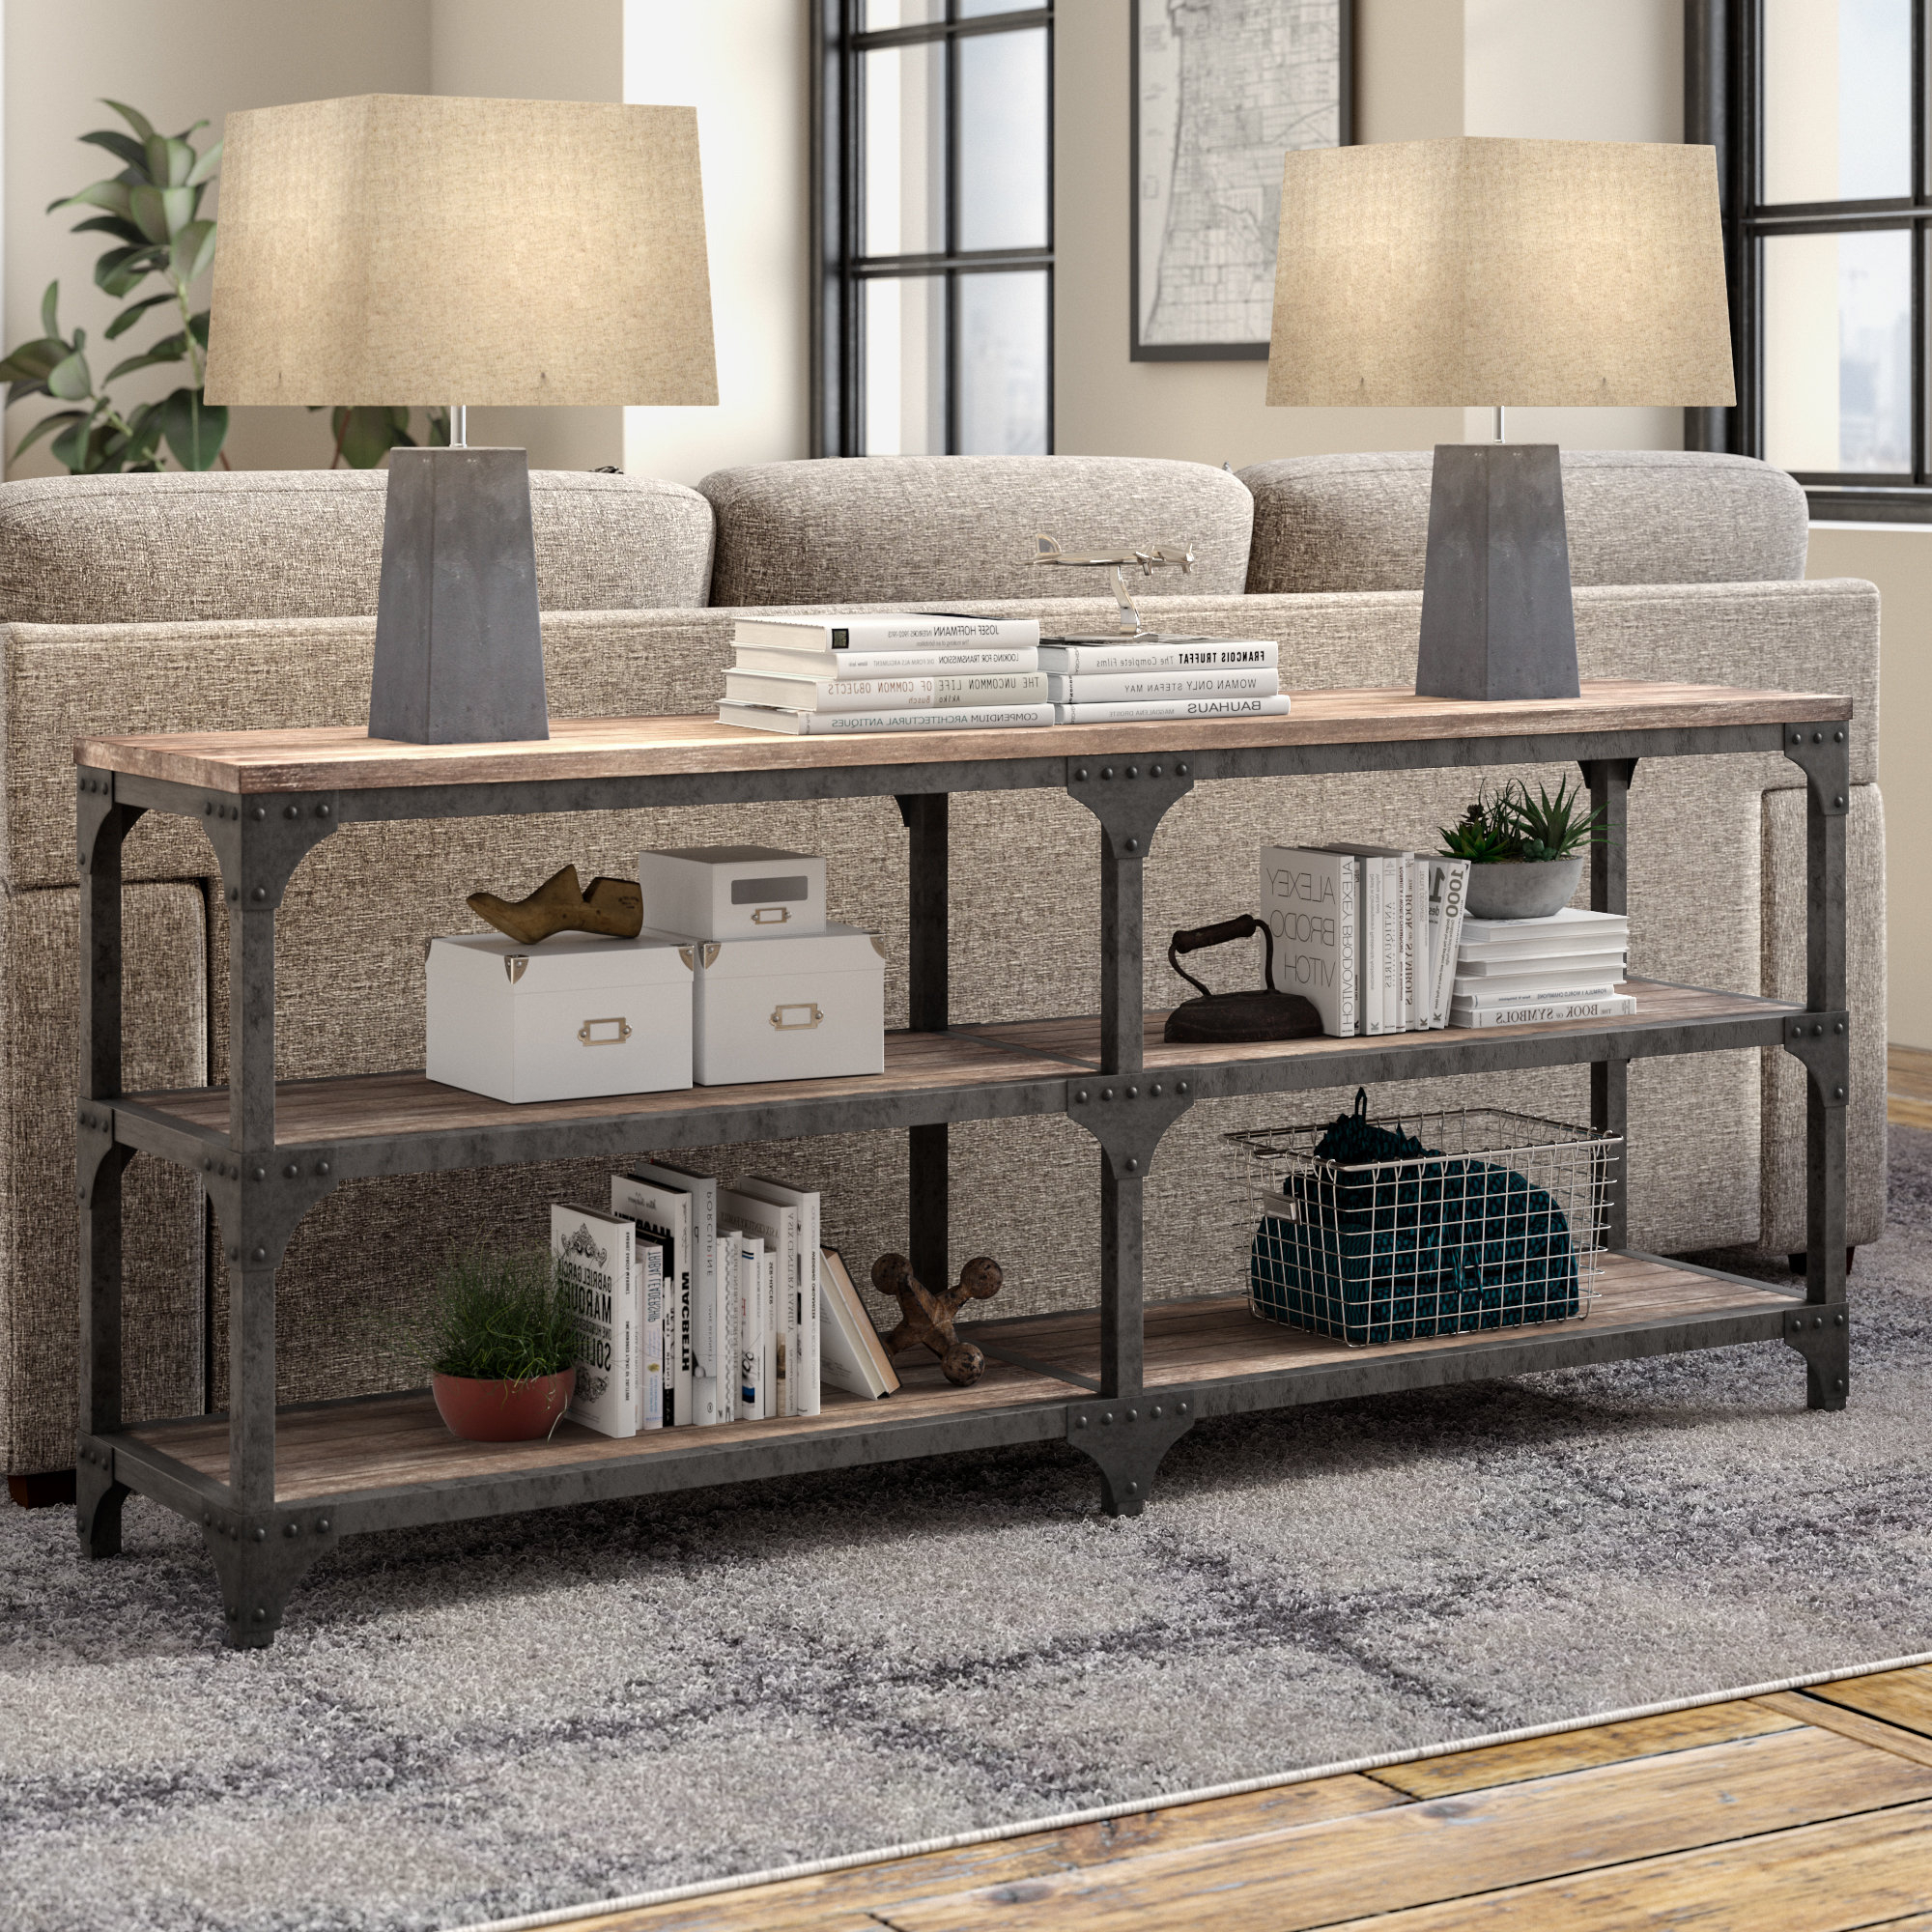 Industrial Console Tables You'll Love | Wayfair With Regard To Roman Metal Top Console Tables (View 14 of 20)